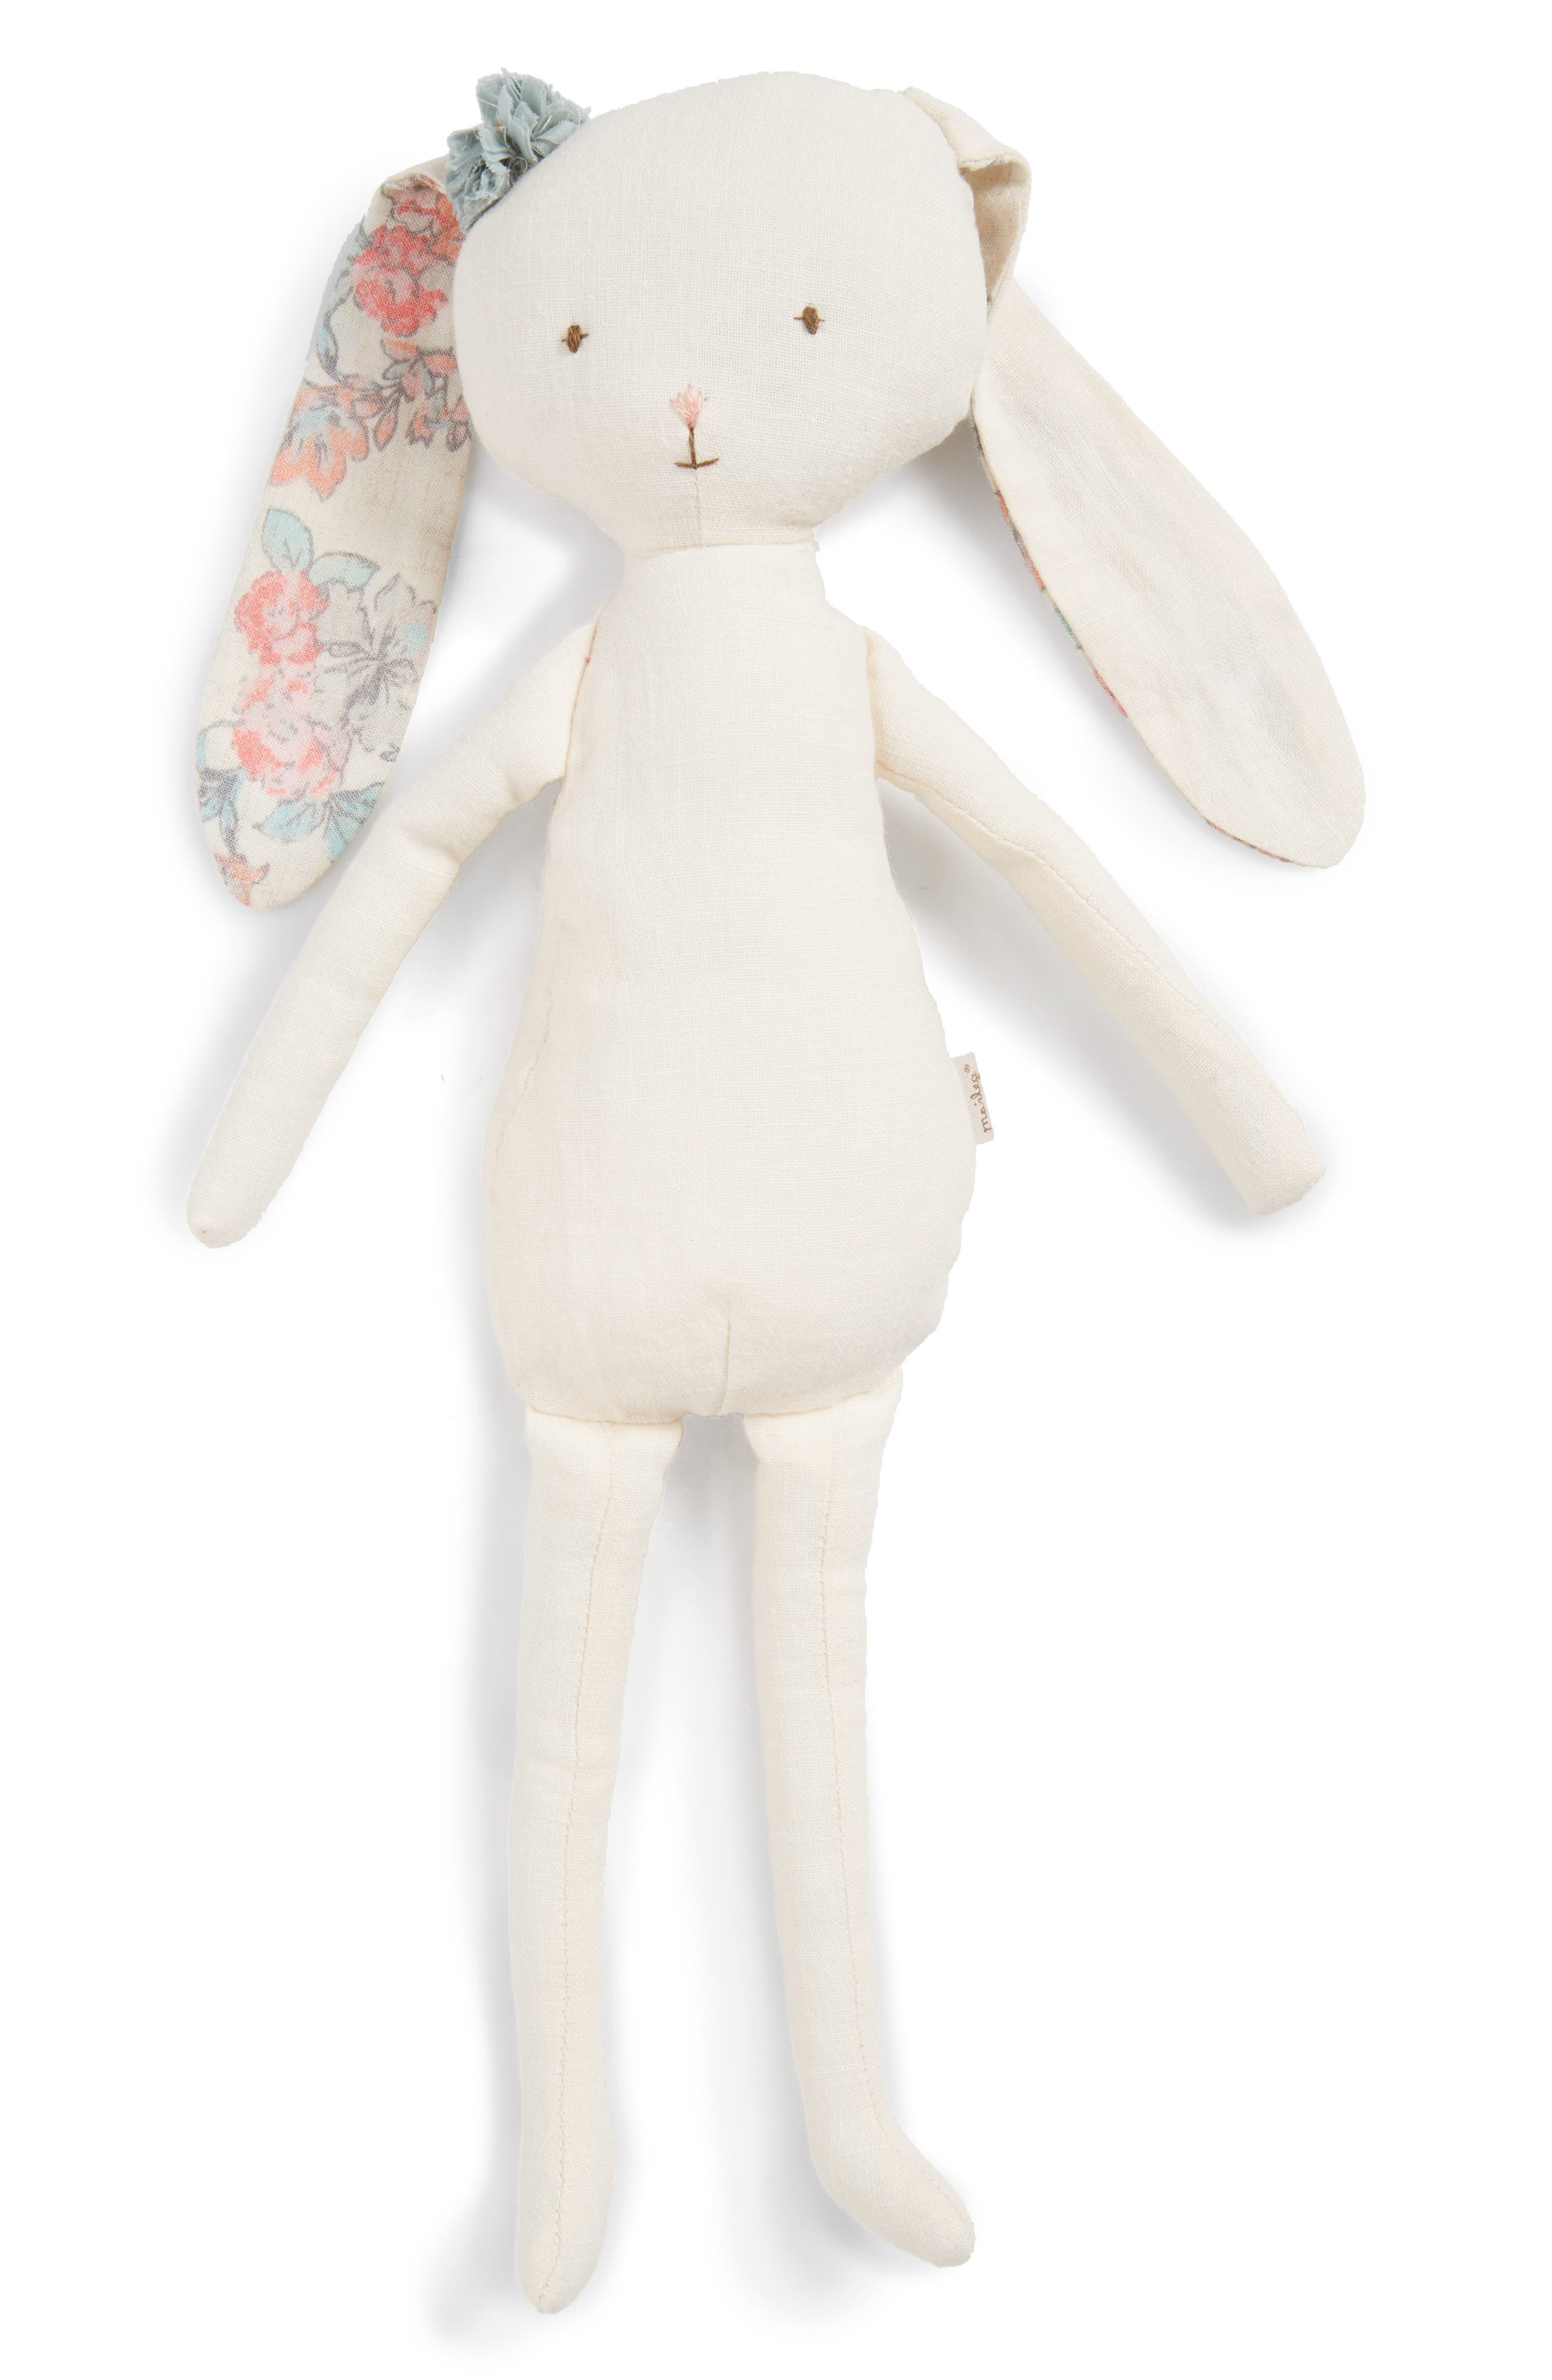 Best Friends Bunny Stuffed Animal,                         Main,                         color, Ivory